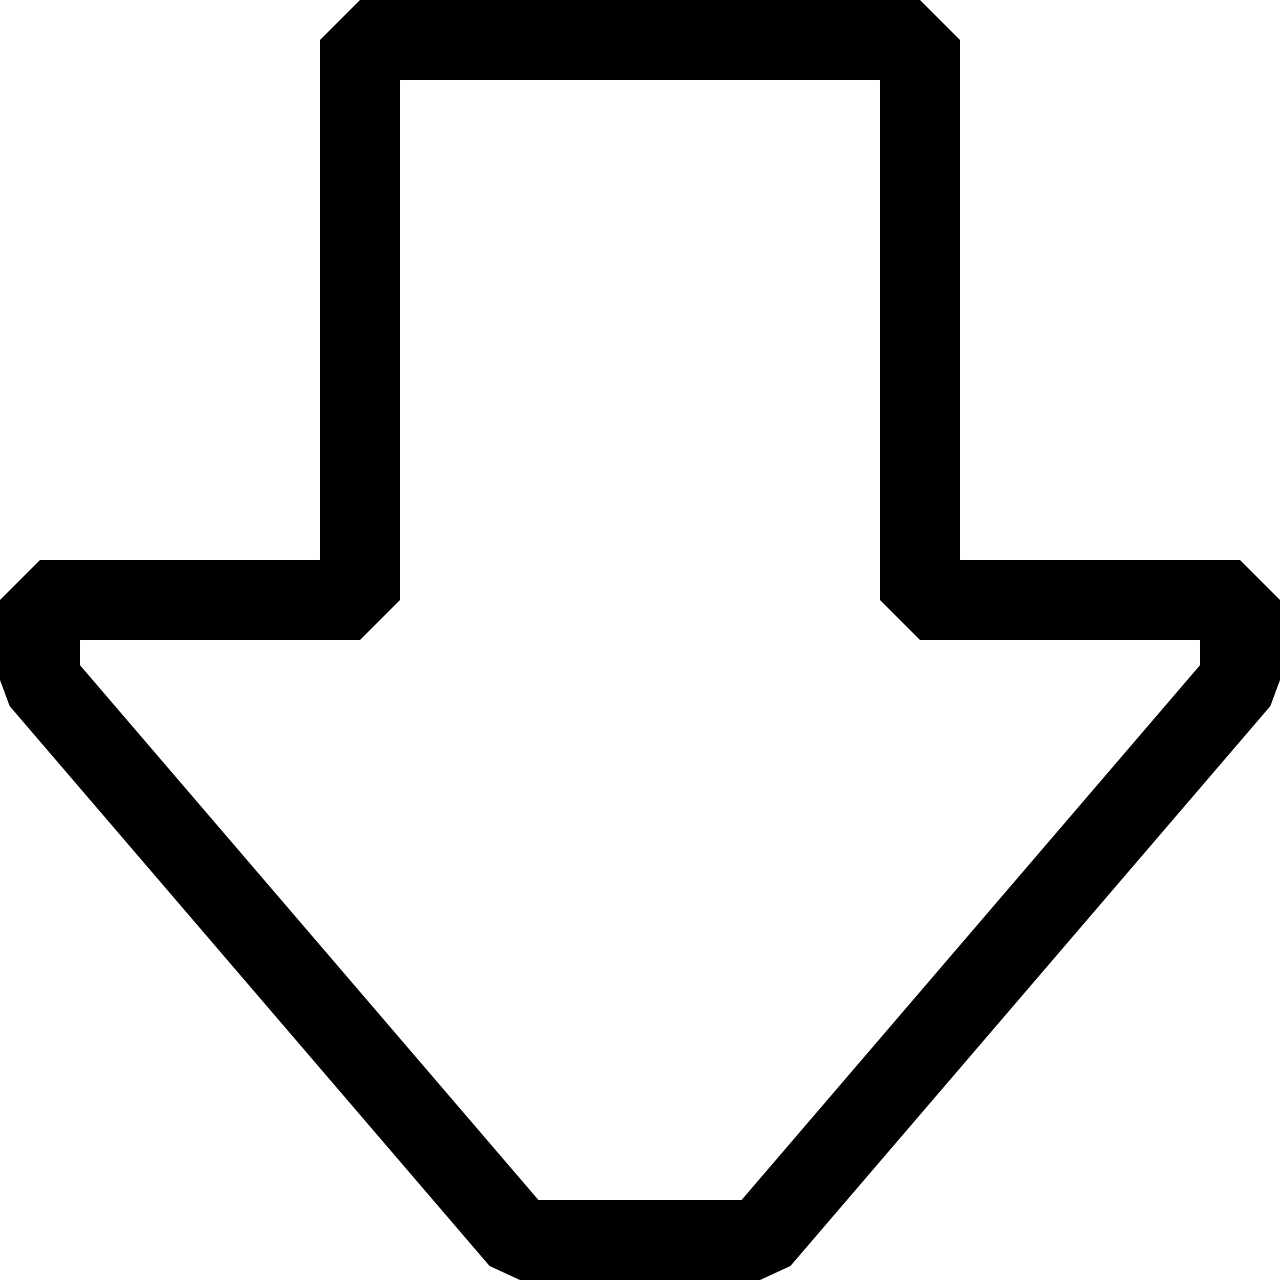 arrow down symbol free photo